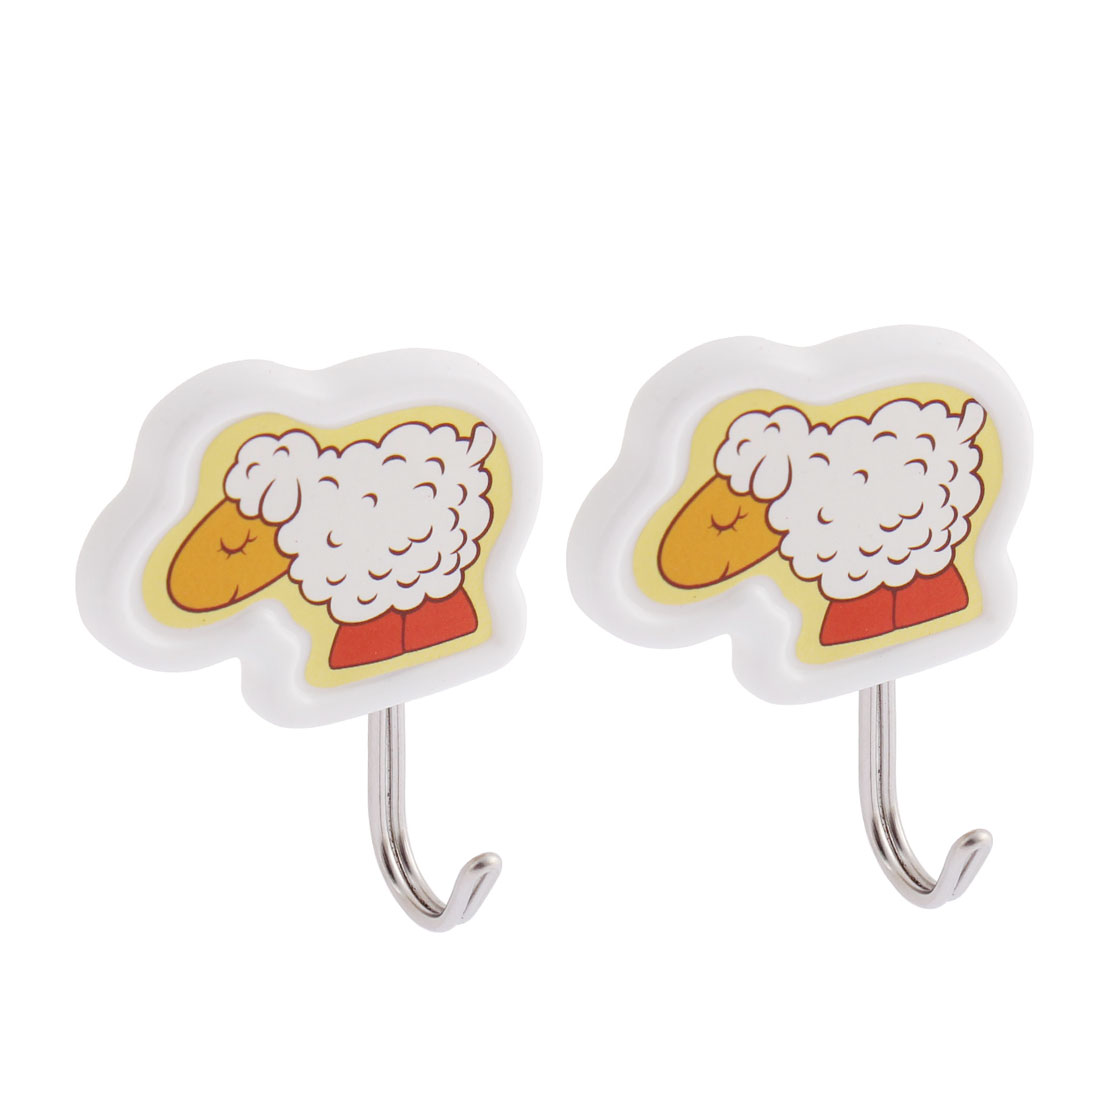 Family Door Wall Sheep Pattern Towel Bag Self-adhesive Hanger Holder Hook 2pcs